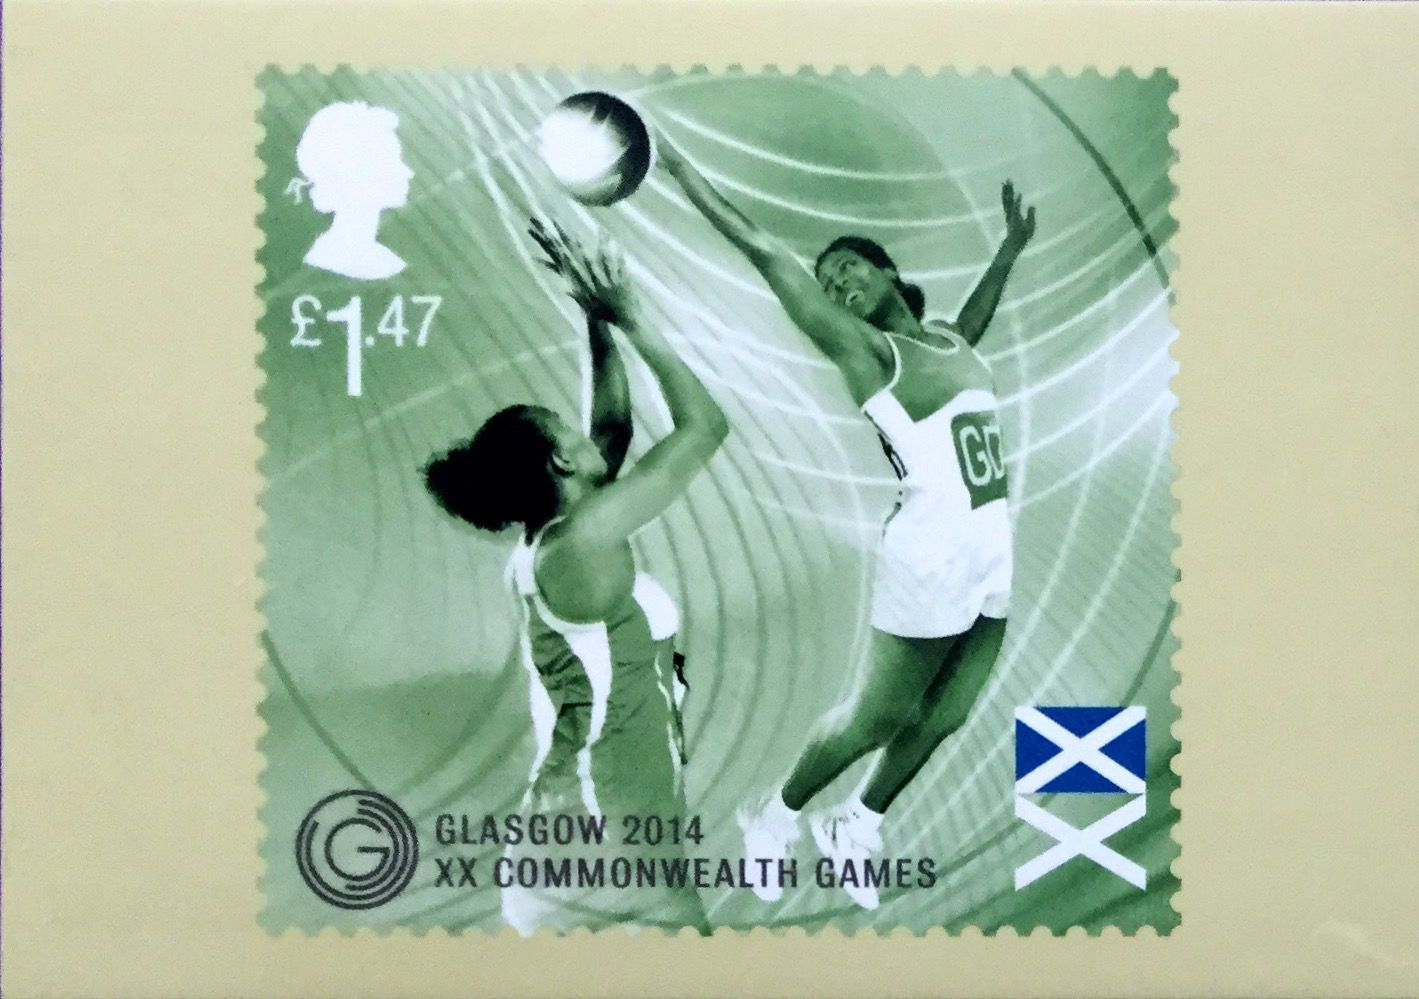 391(5). Issued 17 July 2014 Commonwealth Games Glasgow